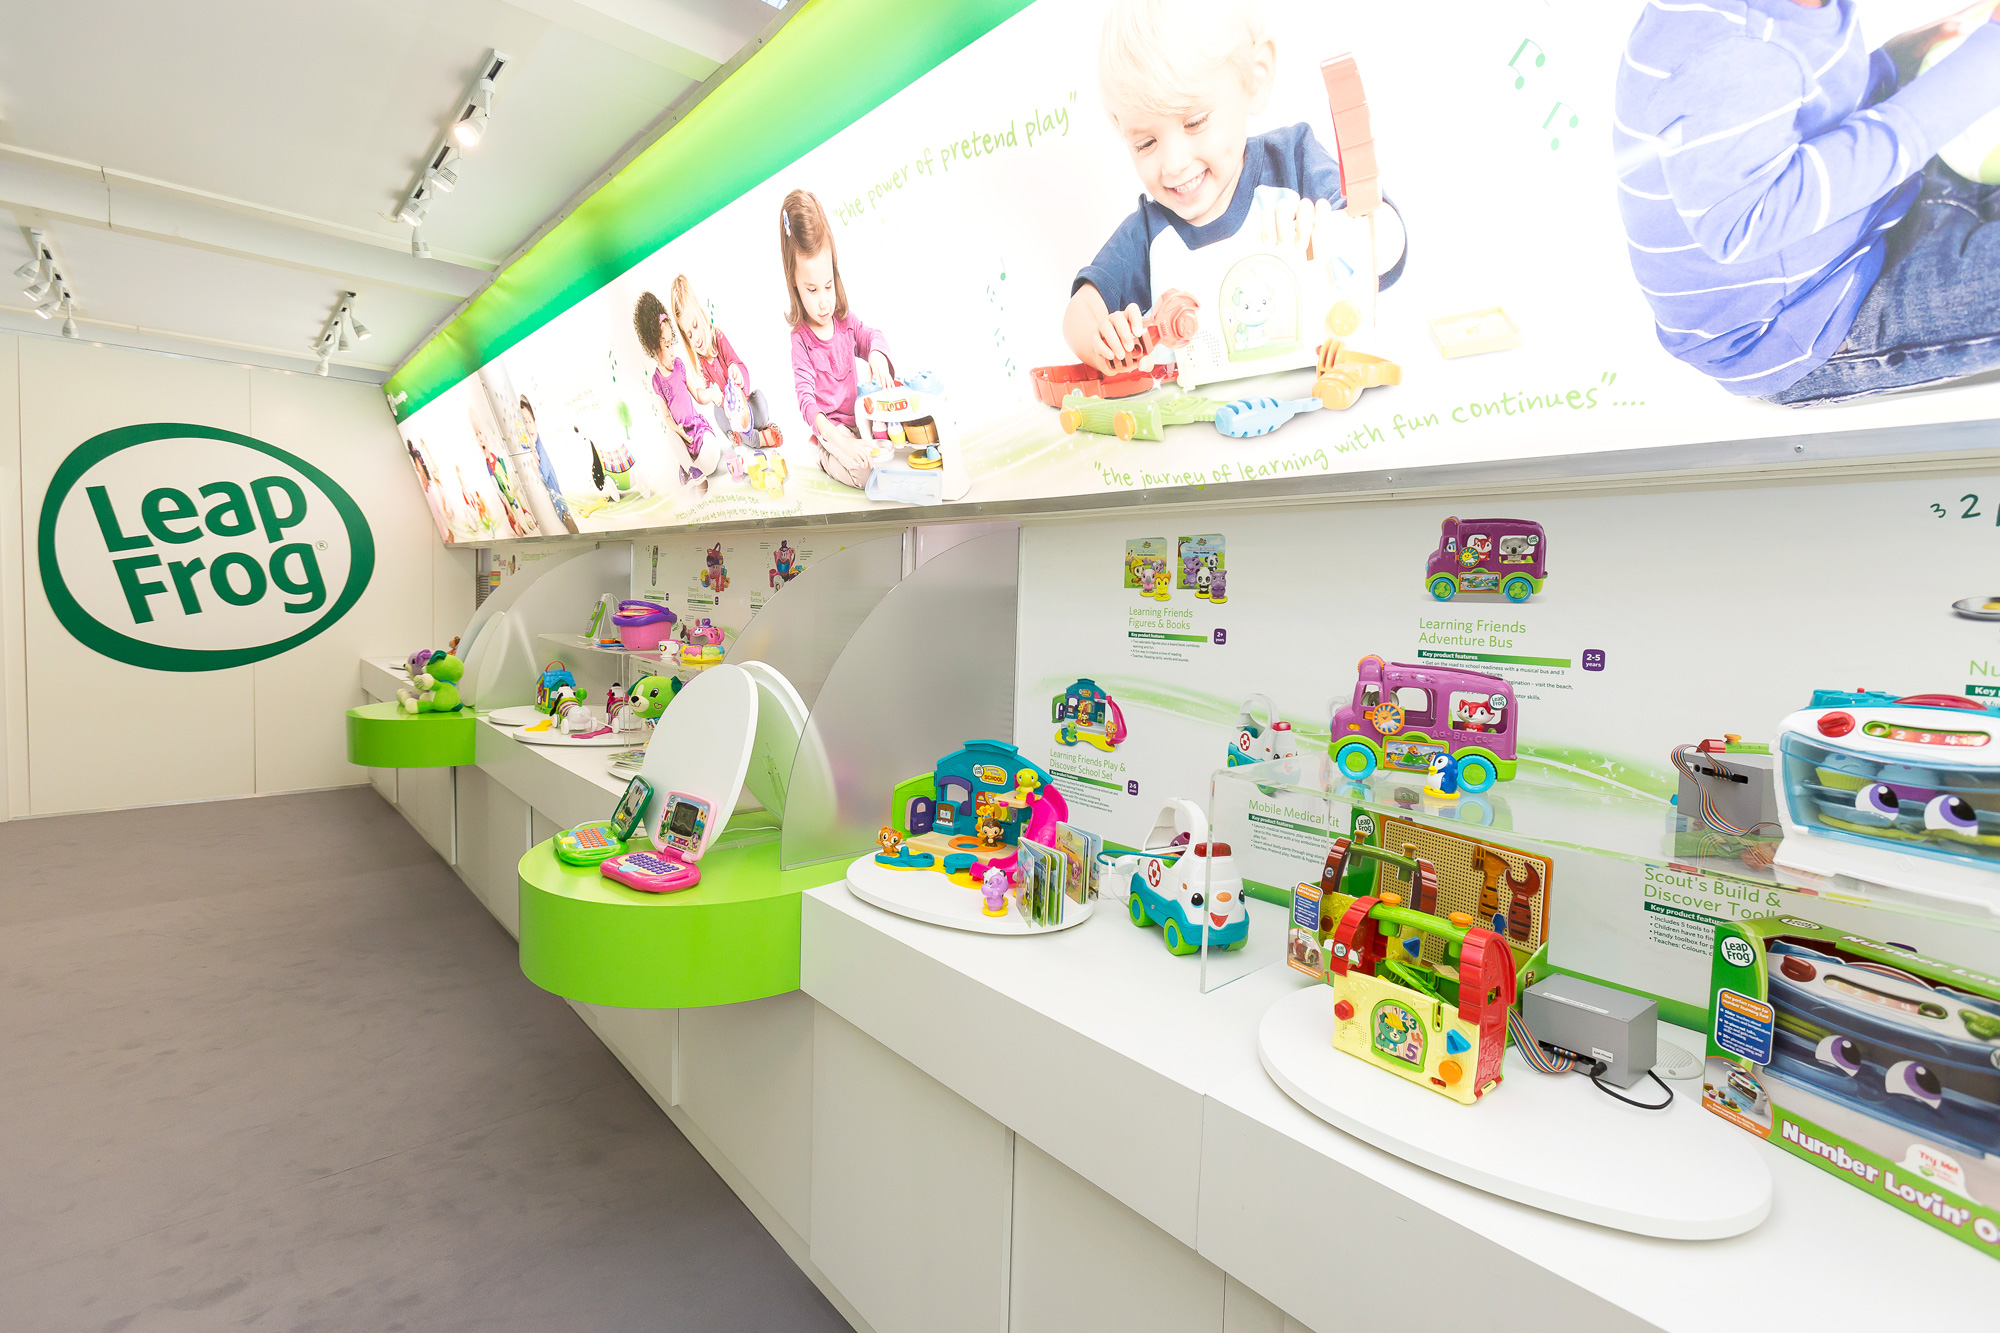 Exhibition design for Leapfrog at UK Toy Fair